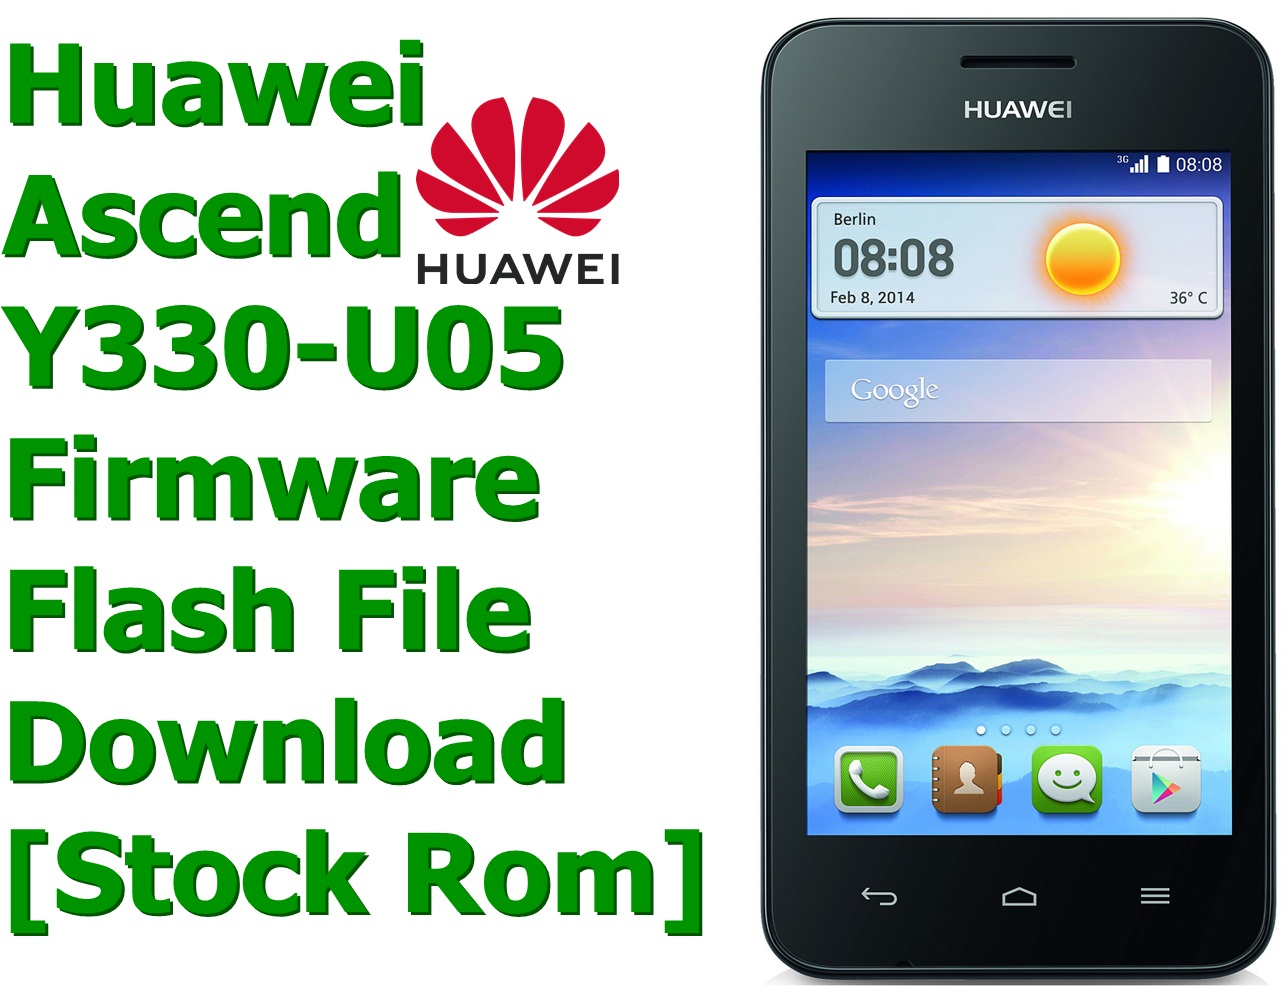 Huawei Ascend Y330-U05 [Stock Rom] Firmware Flash File Download